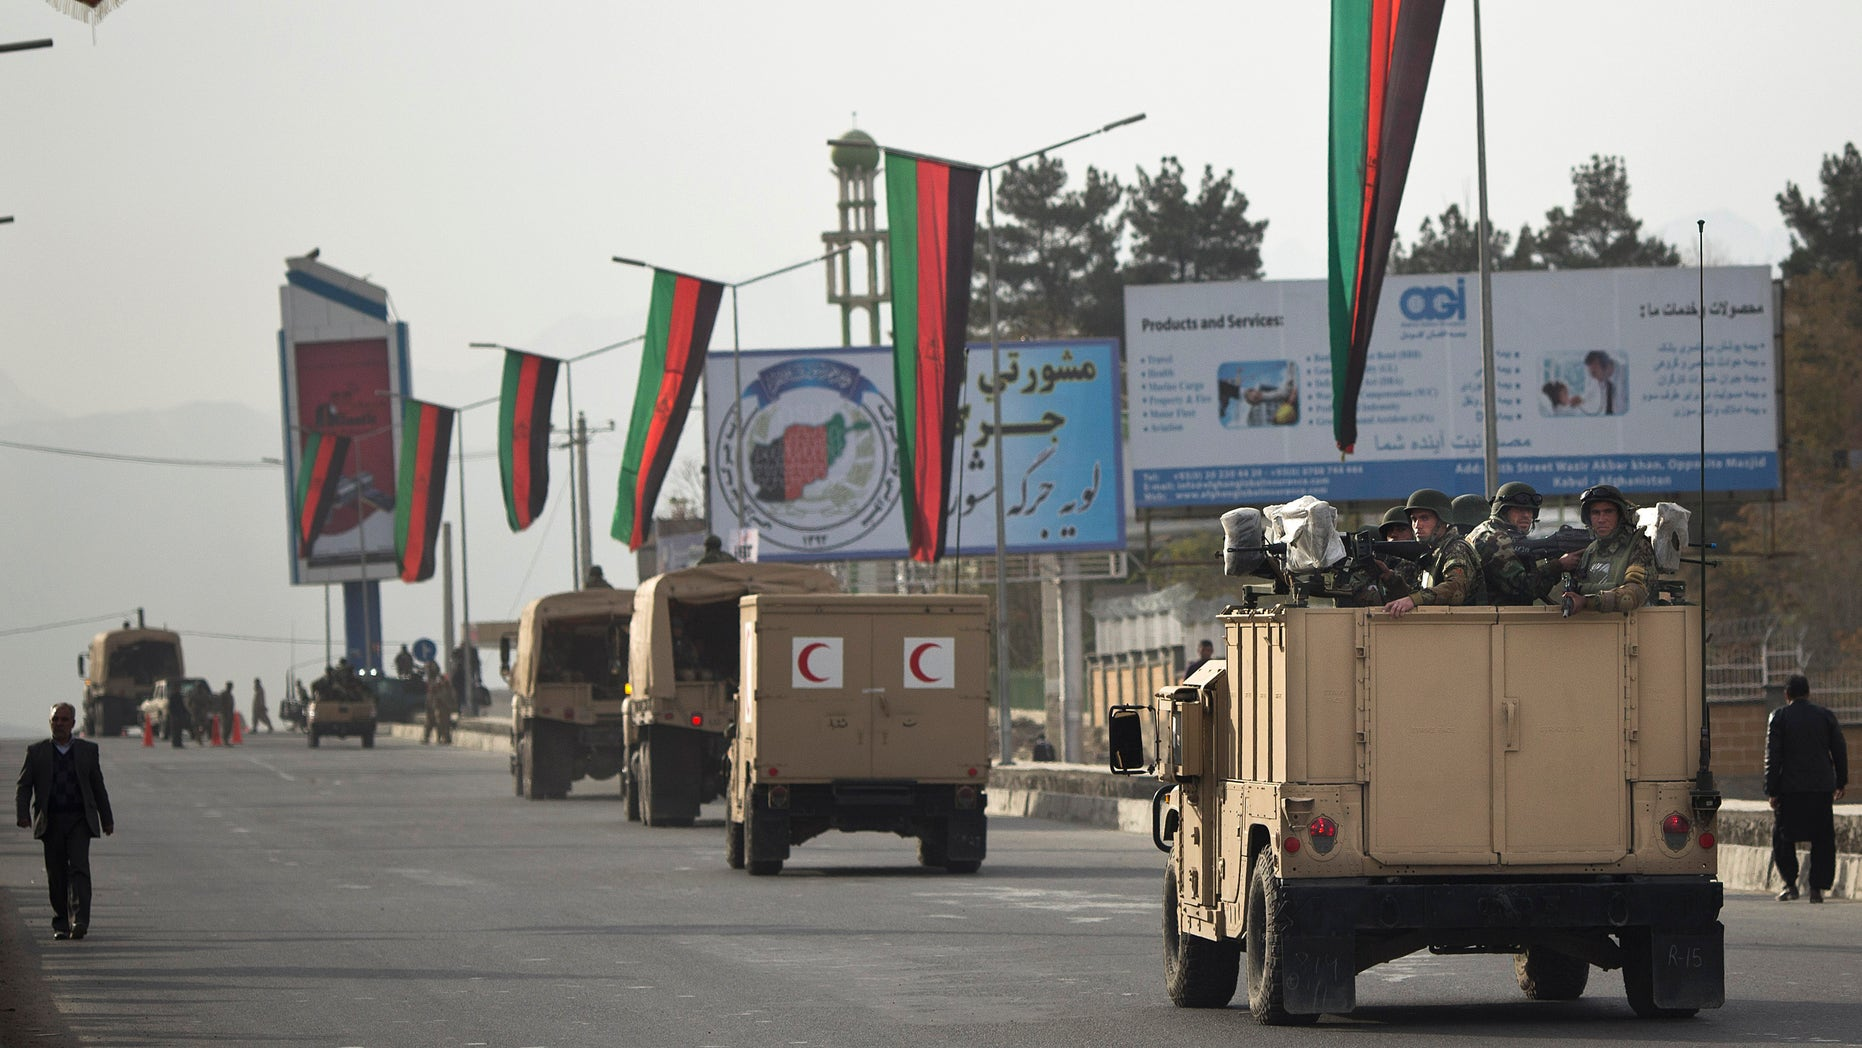 Nov. 18, 2013 -  A convoy of Afghan soldiers moves into the area where the Loya Jirga will take place later this week in Kabul, Afghanistan. Security stepped up after a blast on Nov. 16. Thousands of prominent Afghans are scheduled to meet in the Afghan capital to debate a contentious security agreement with the US.